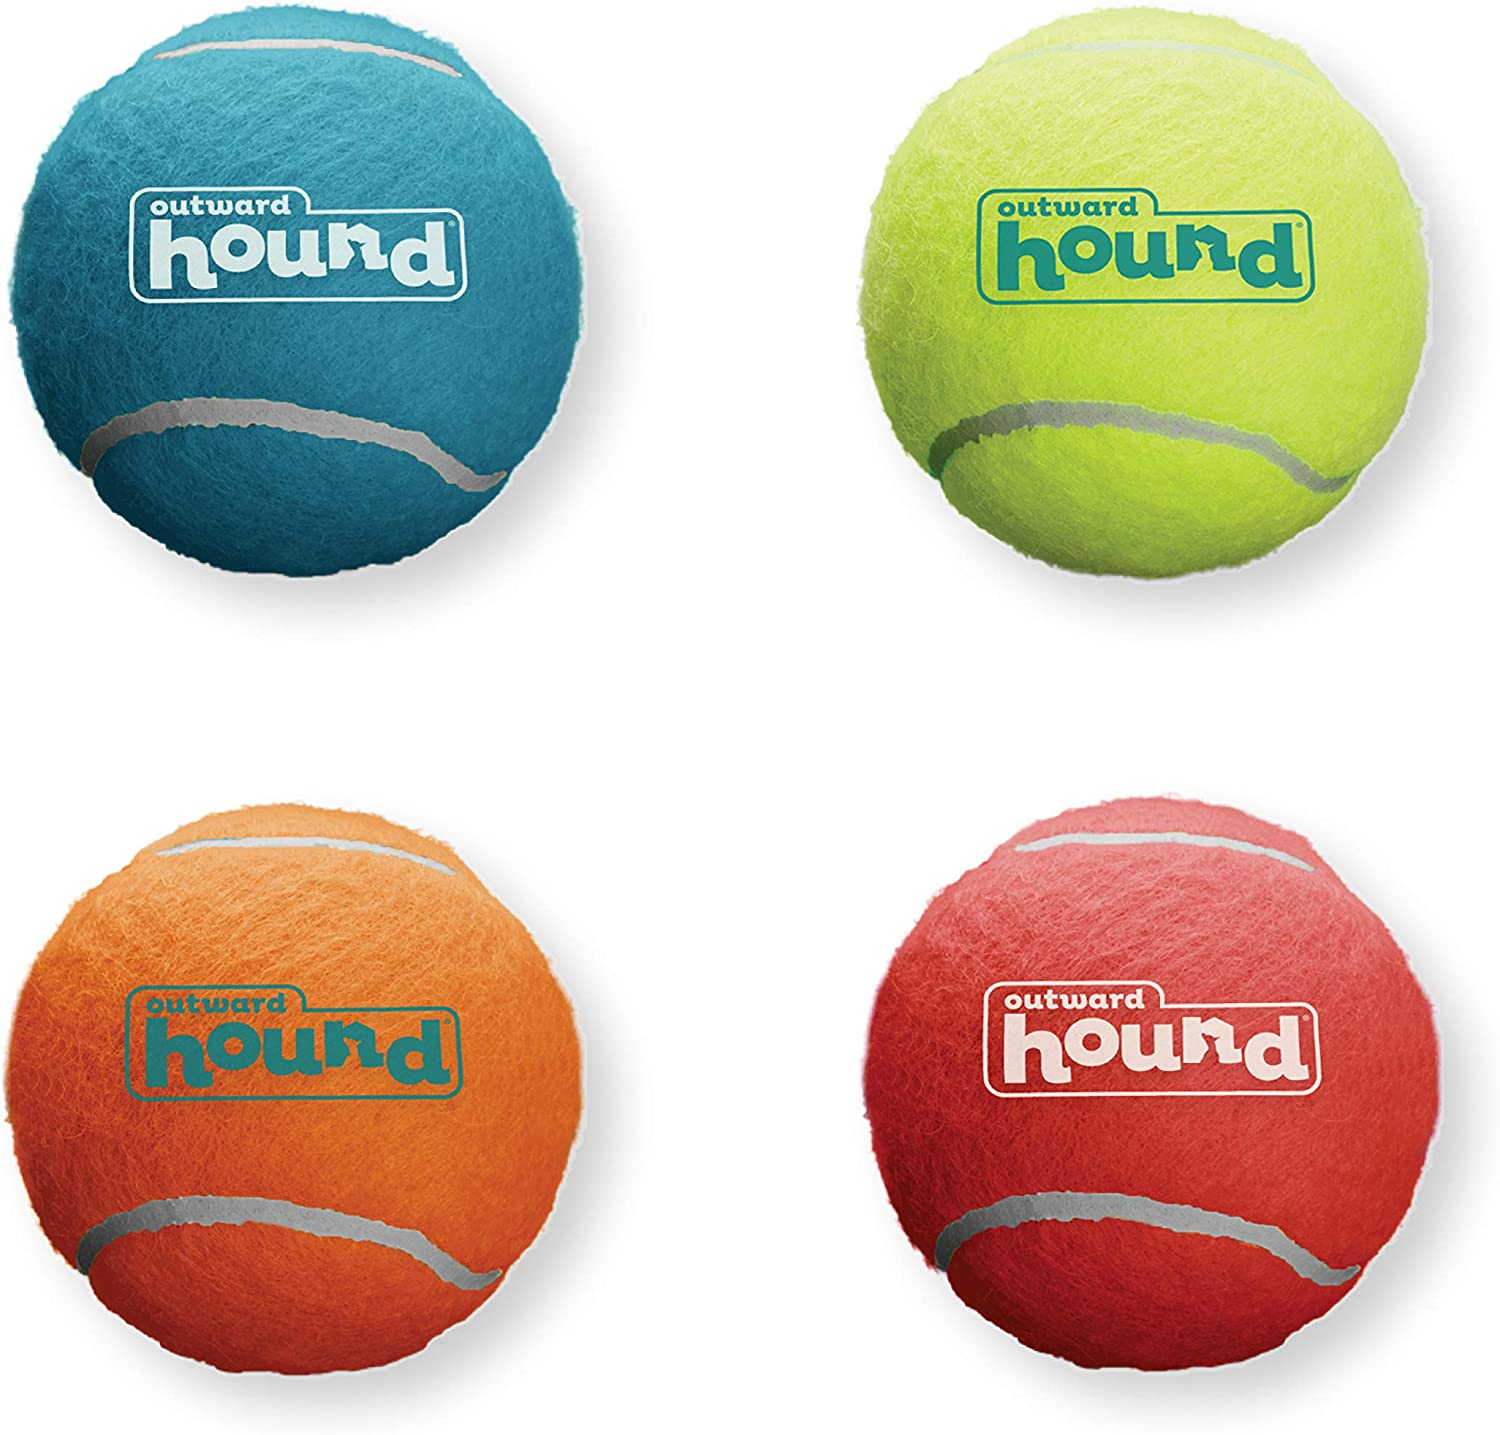 Outward Hound Squeaker Ballz Squeaky Tennis Balls Medium Size 4pk